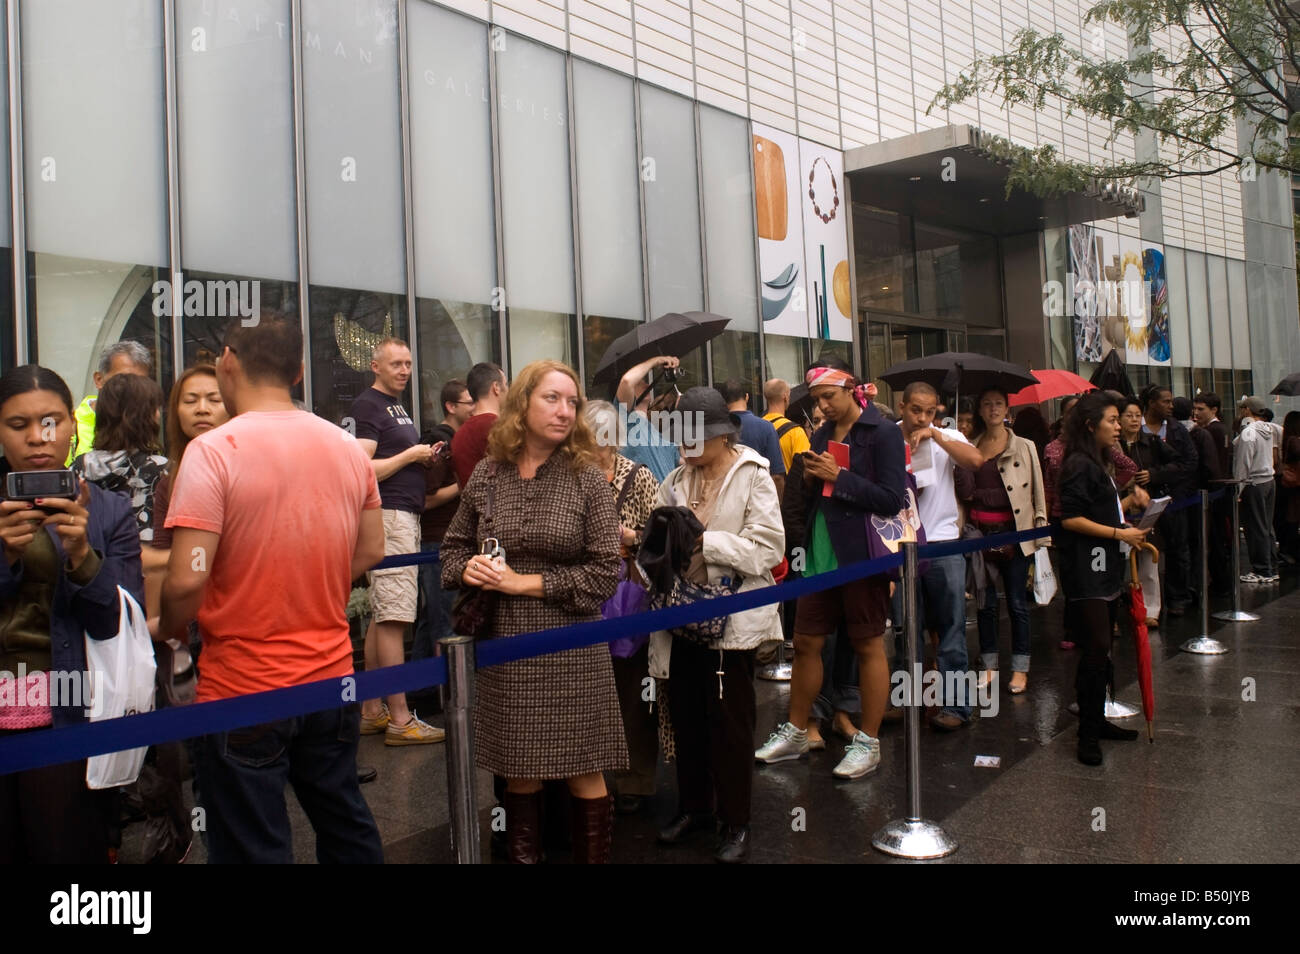 Opening weekend of the Museum of Arts and Design in Columbus Circle in New York Stock Photo